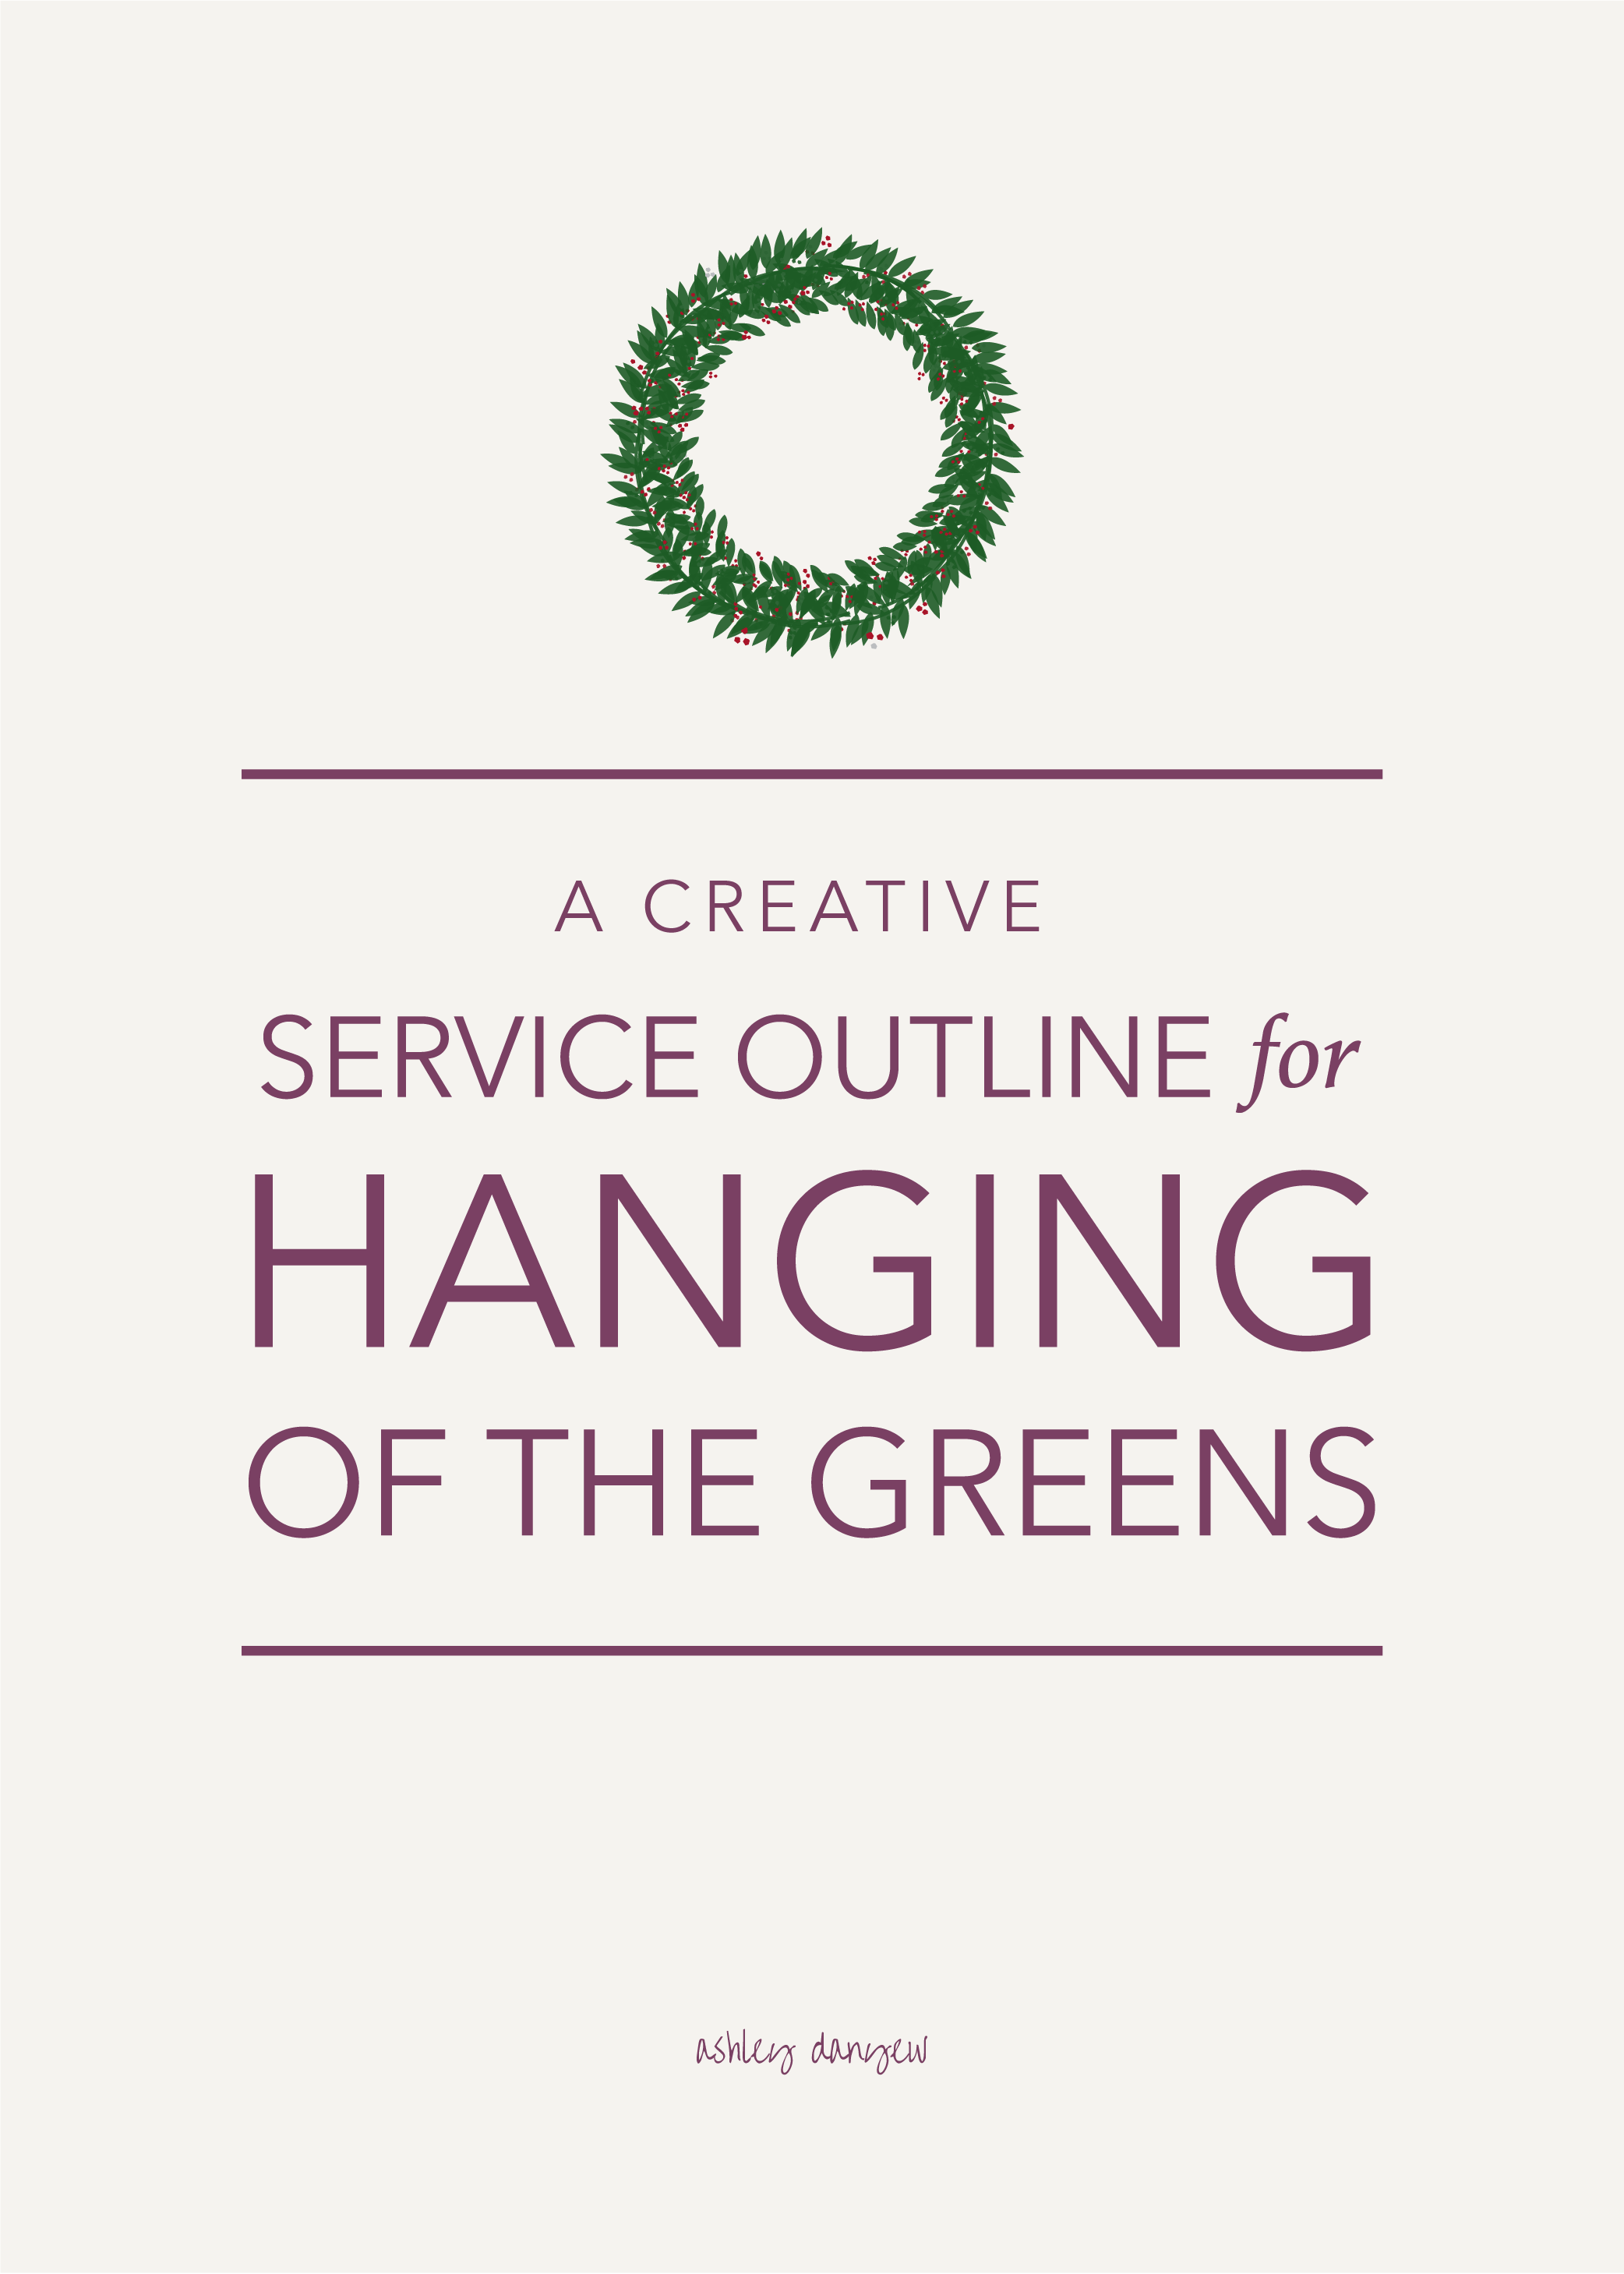 A Creative Service Outline for Hanging of the Greens